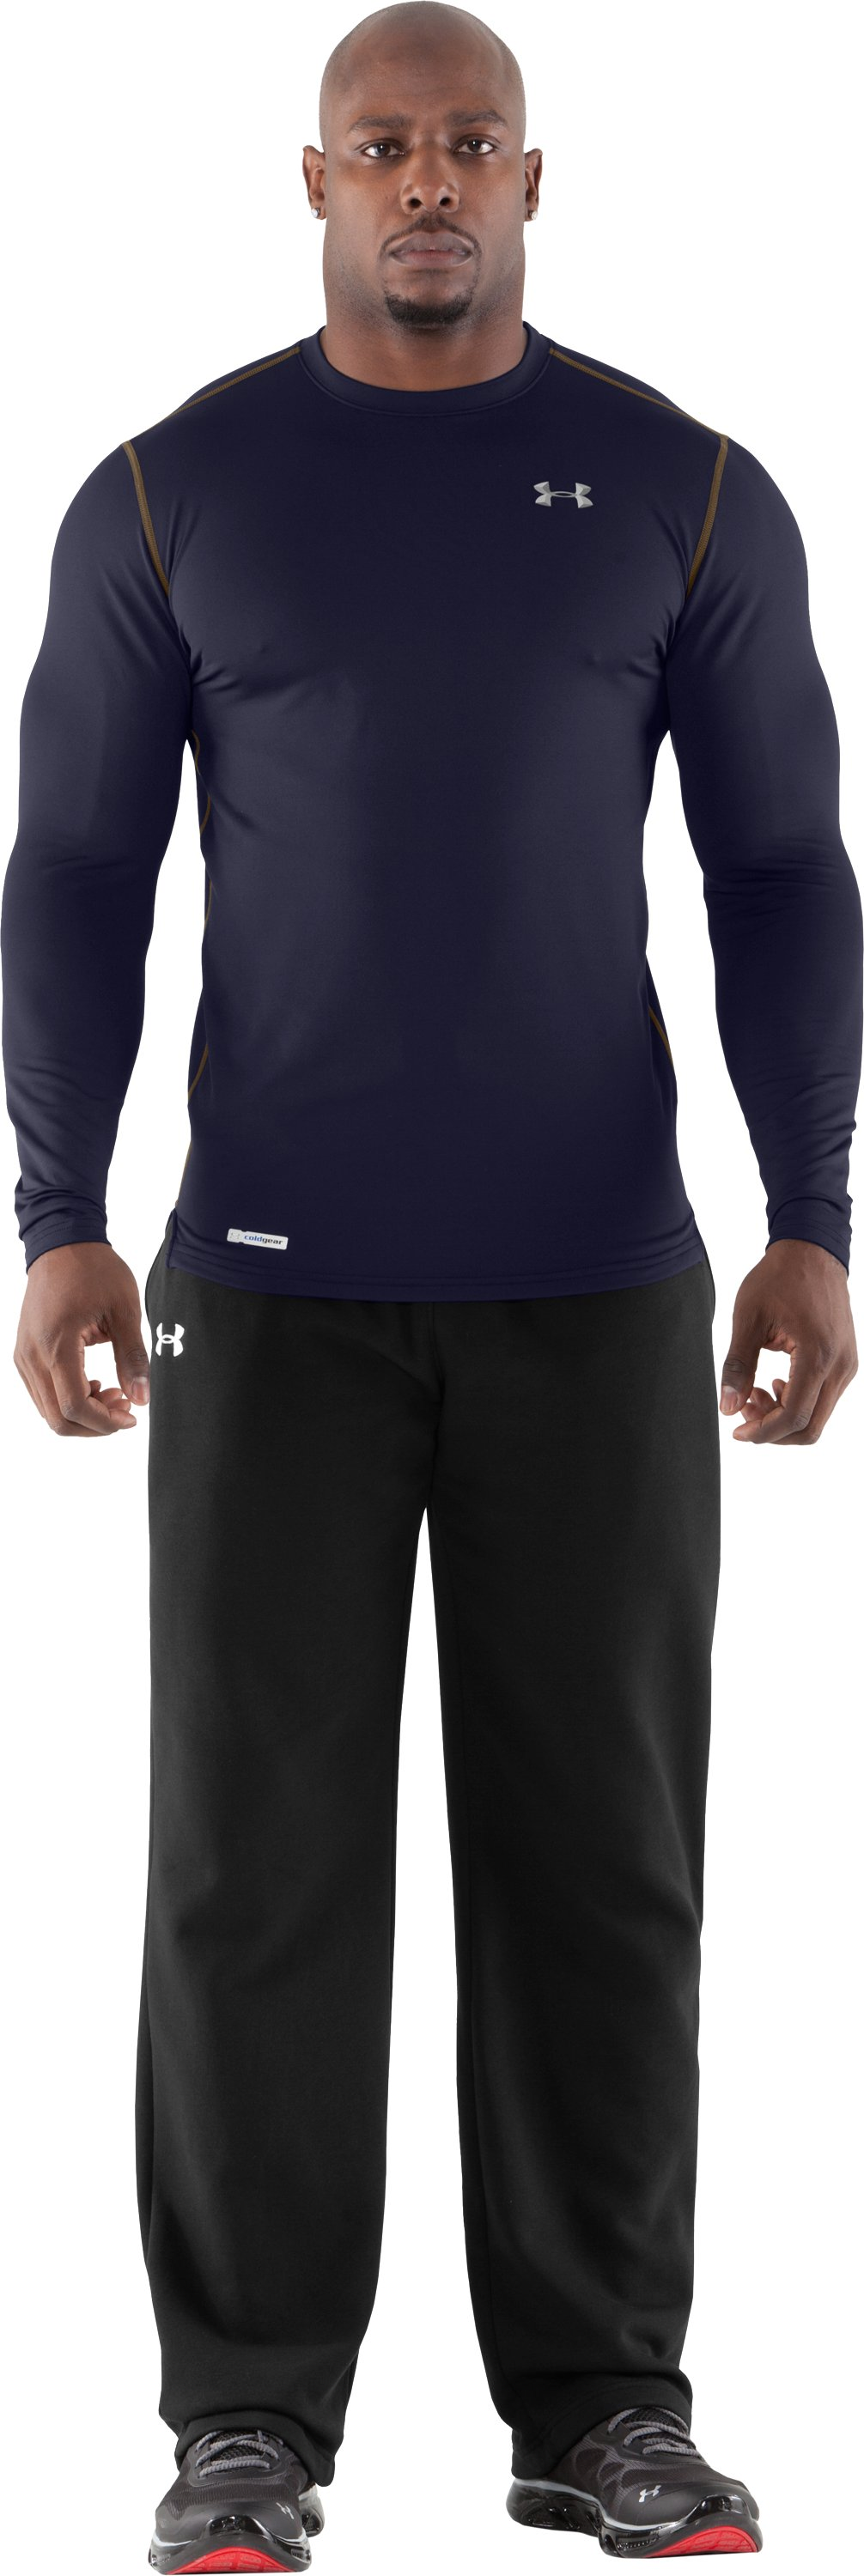 Men's ColdGear® Fitted Long Sleeve Crew, Midnight Navy